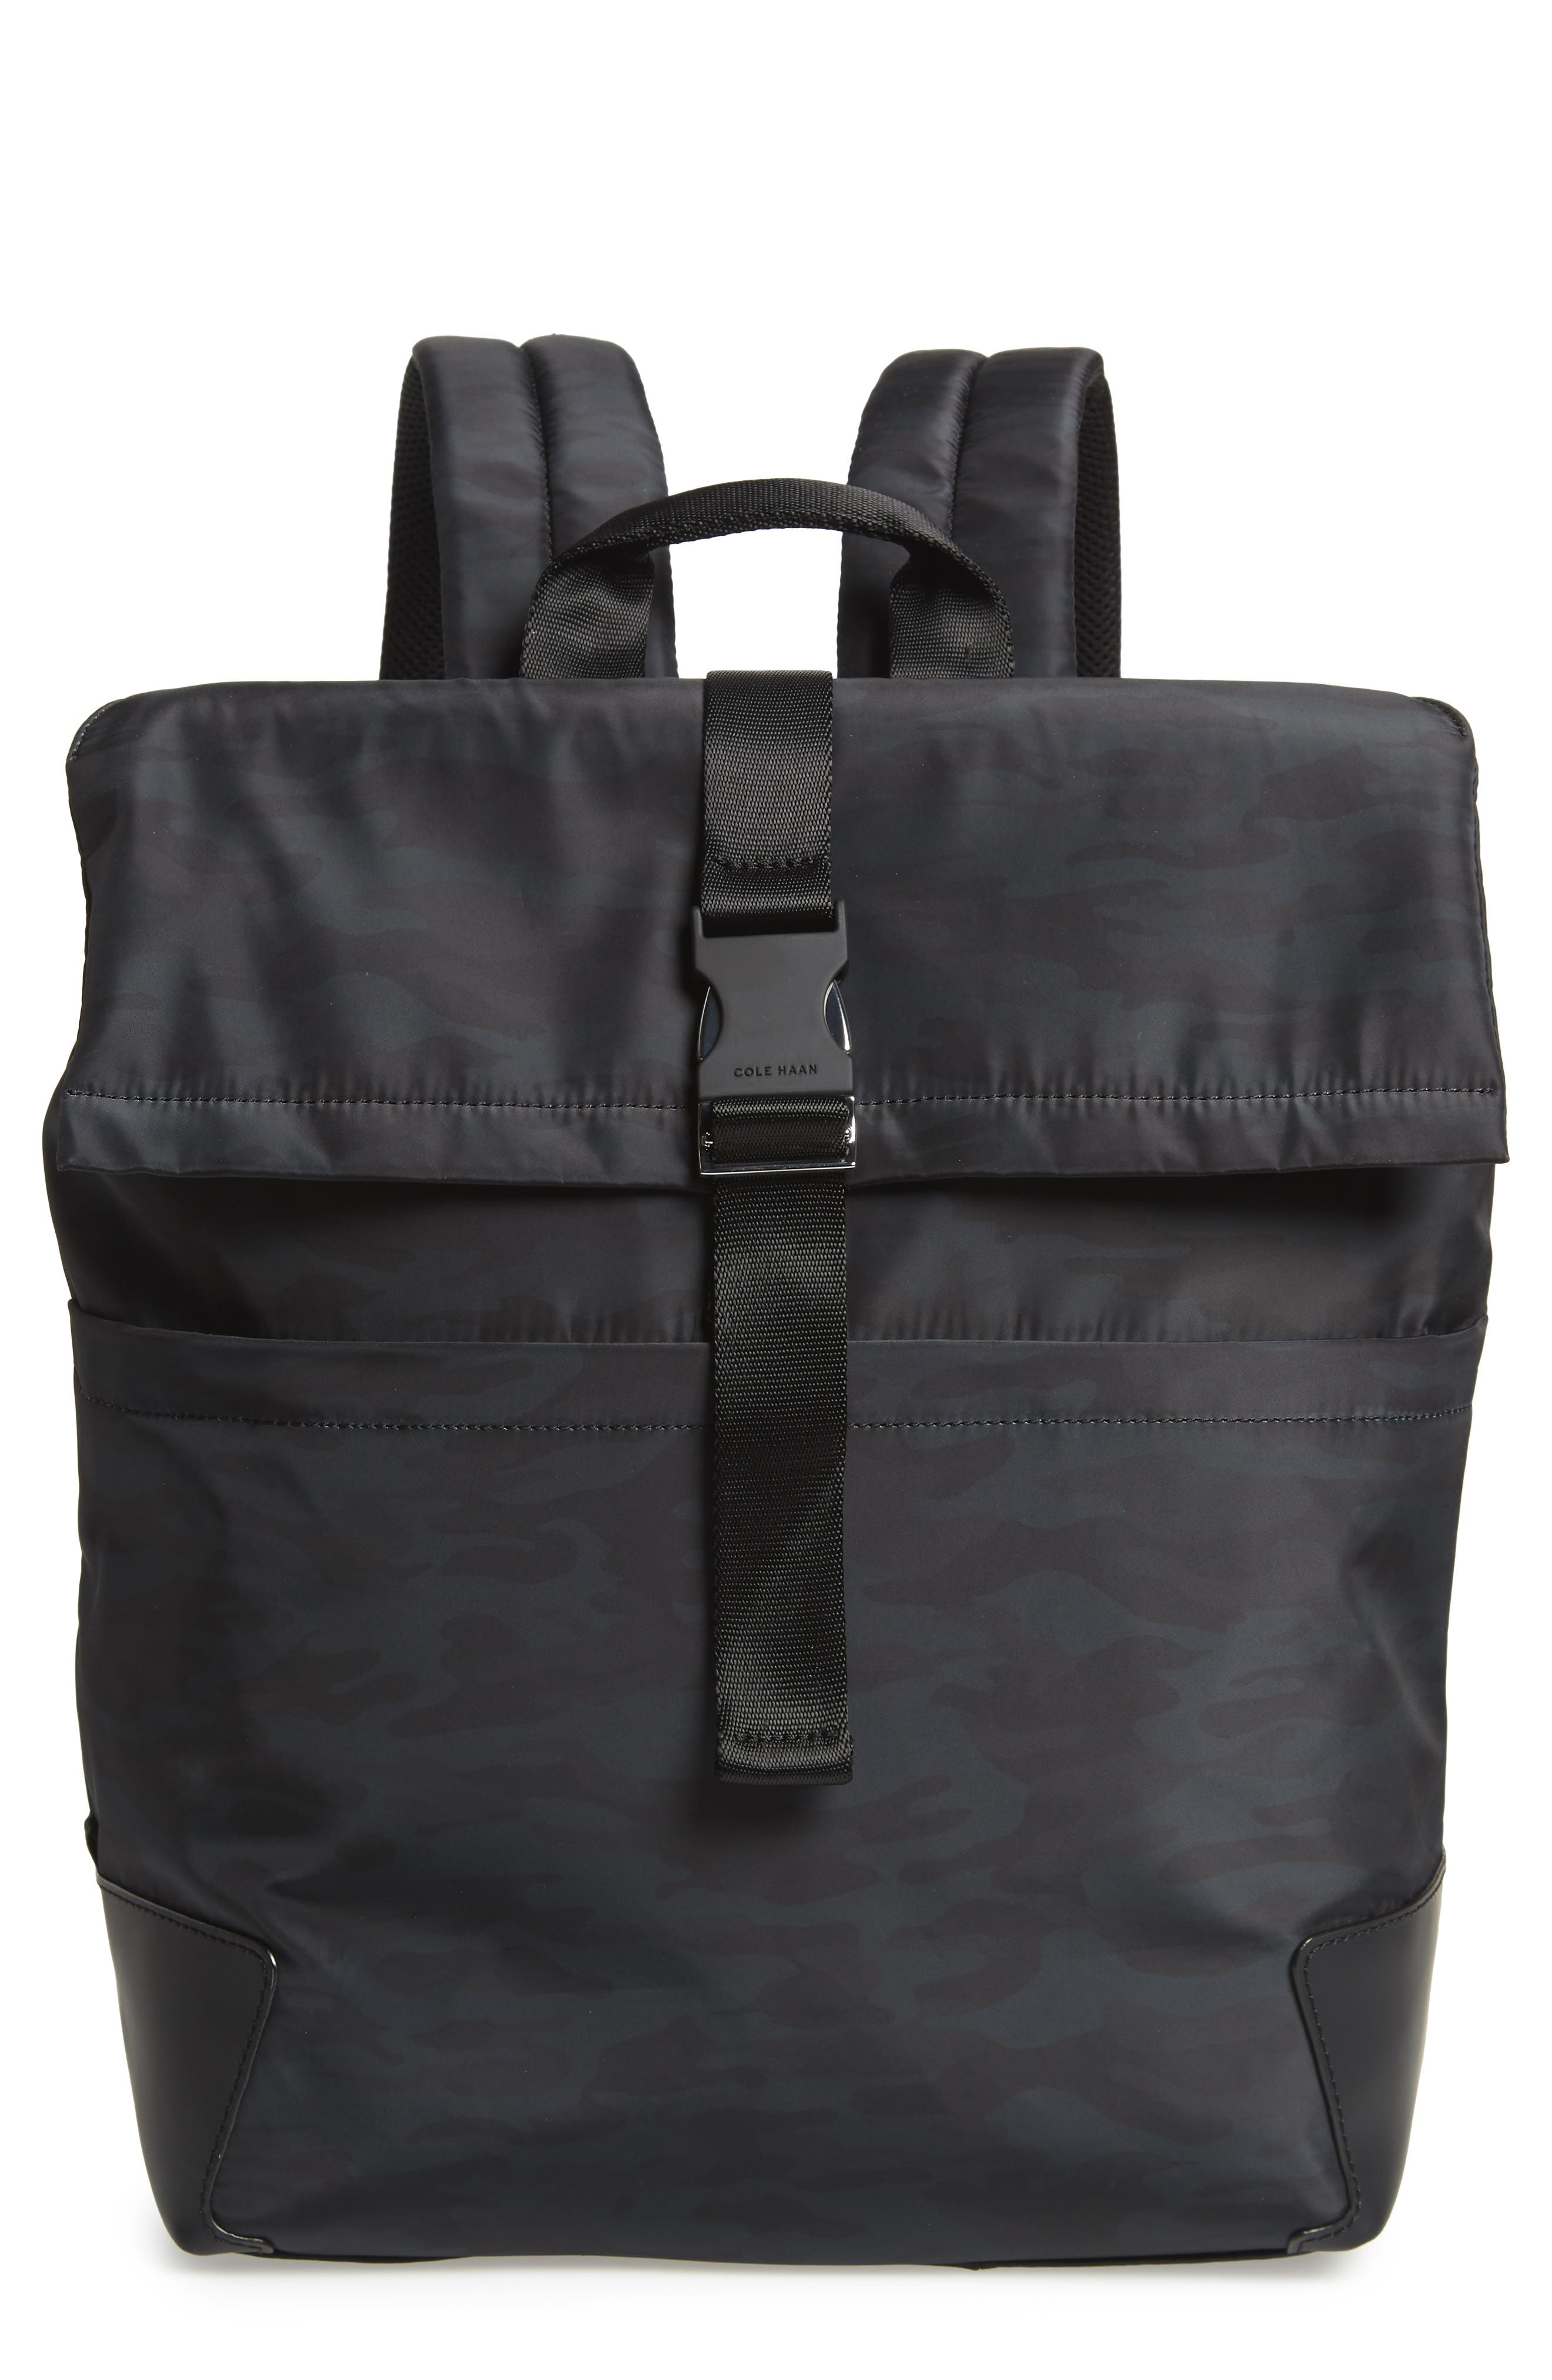 COLE HAAN Sawyer Laptop Backpack, Main, color, CAMO